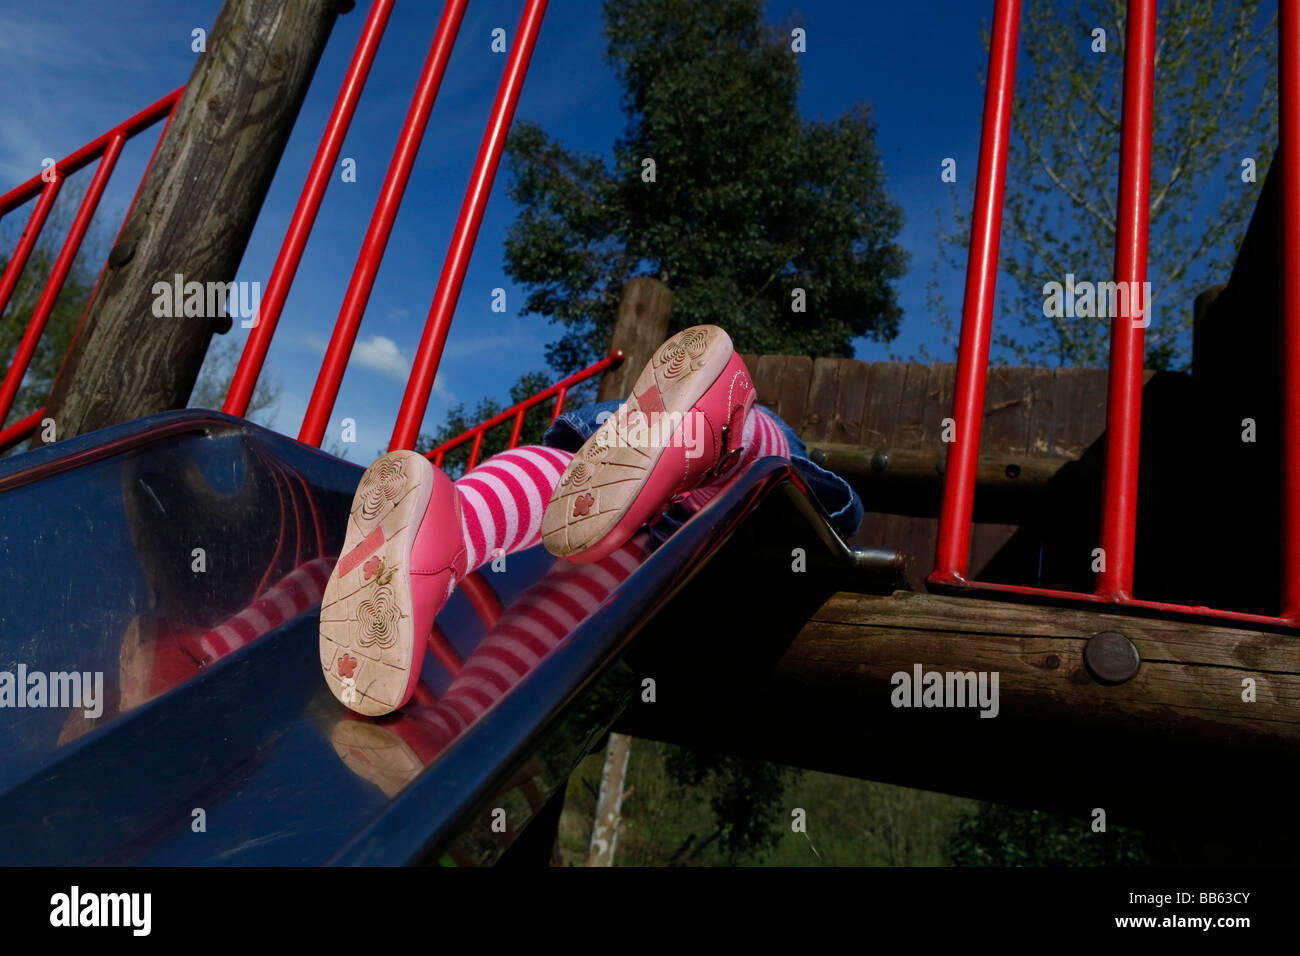 Little girls feet appearing at the top of the slide in the park on a sunny day. - Stock Image